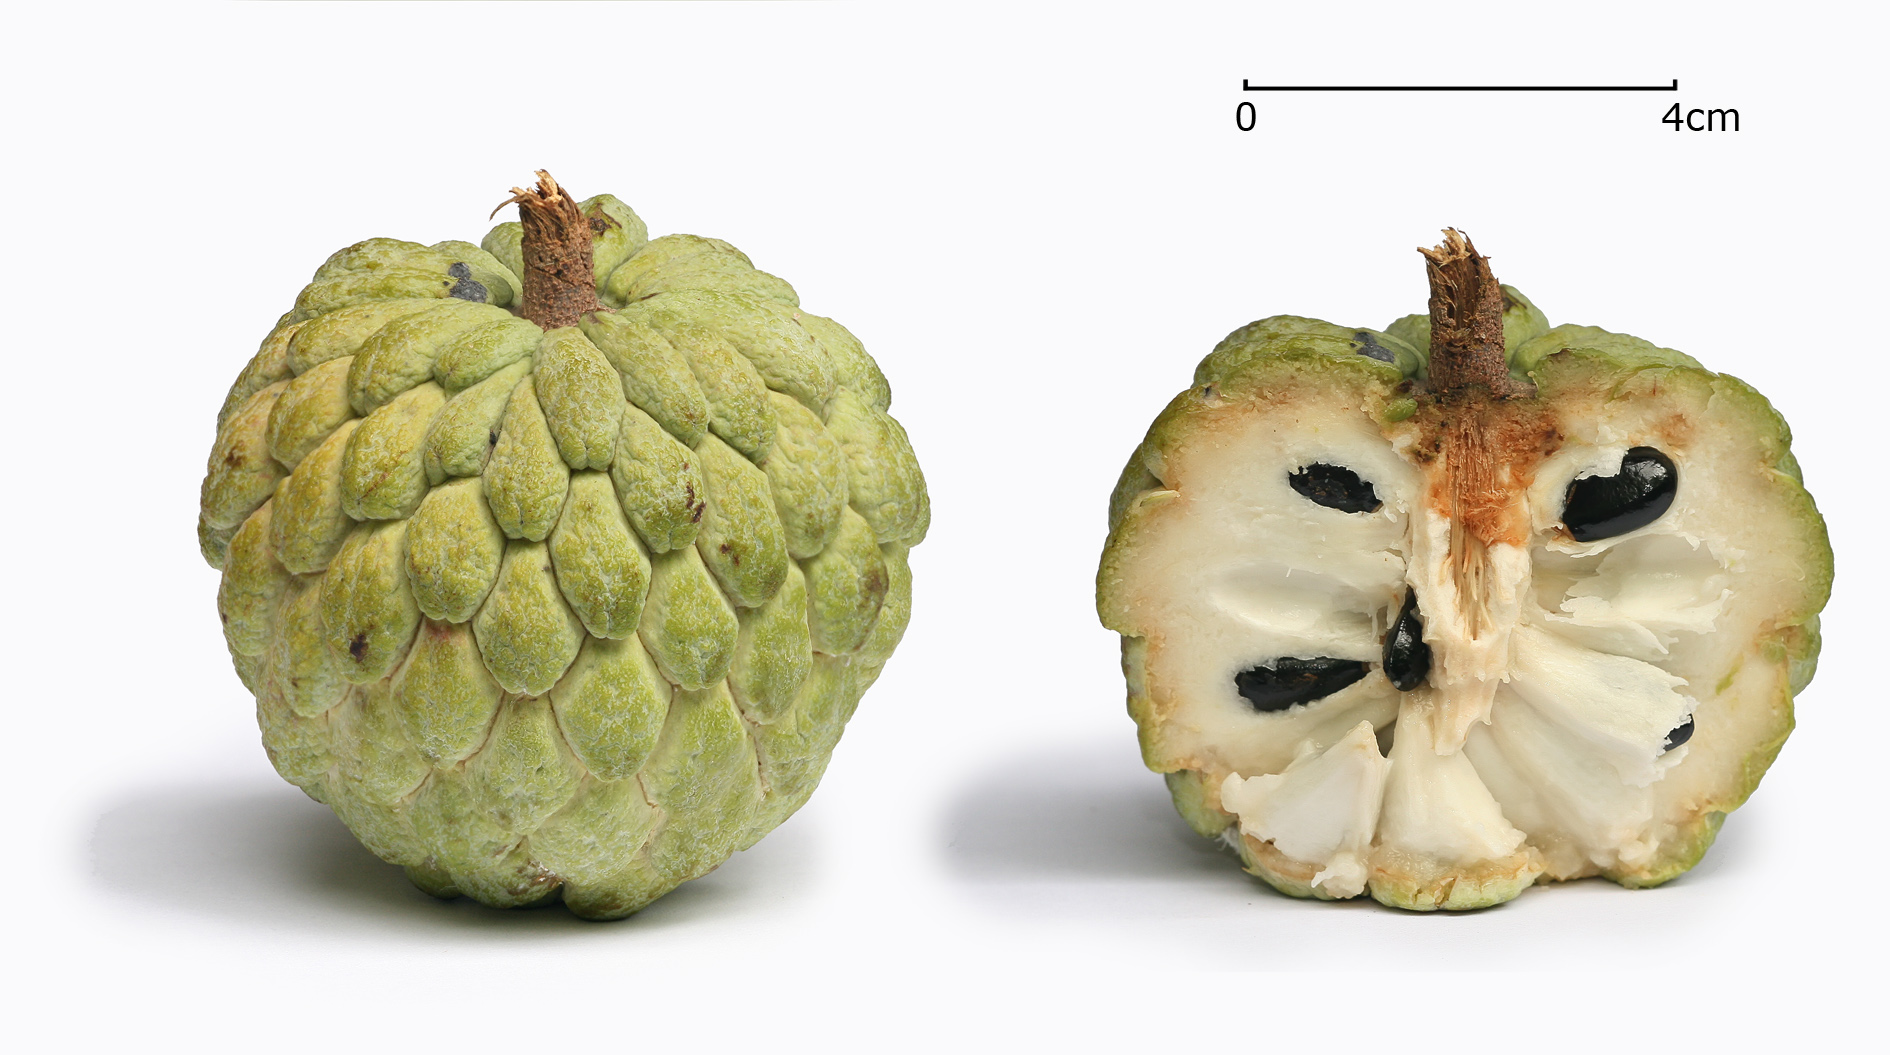 Sugar apple photo